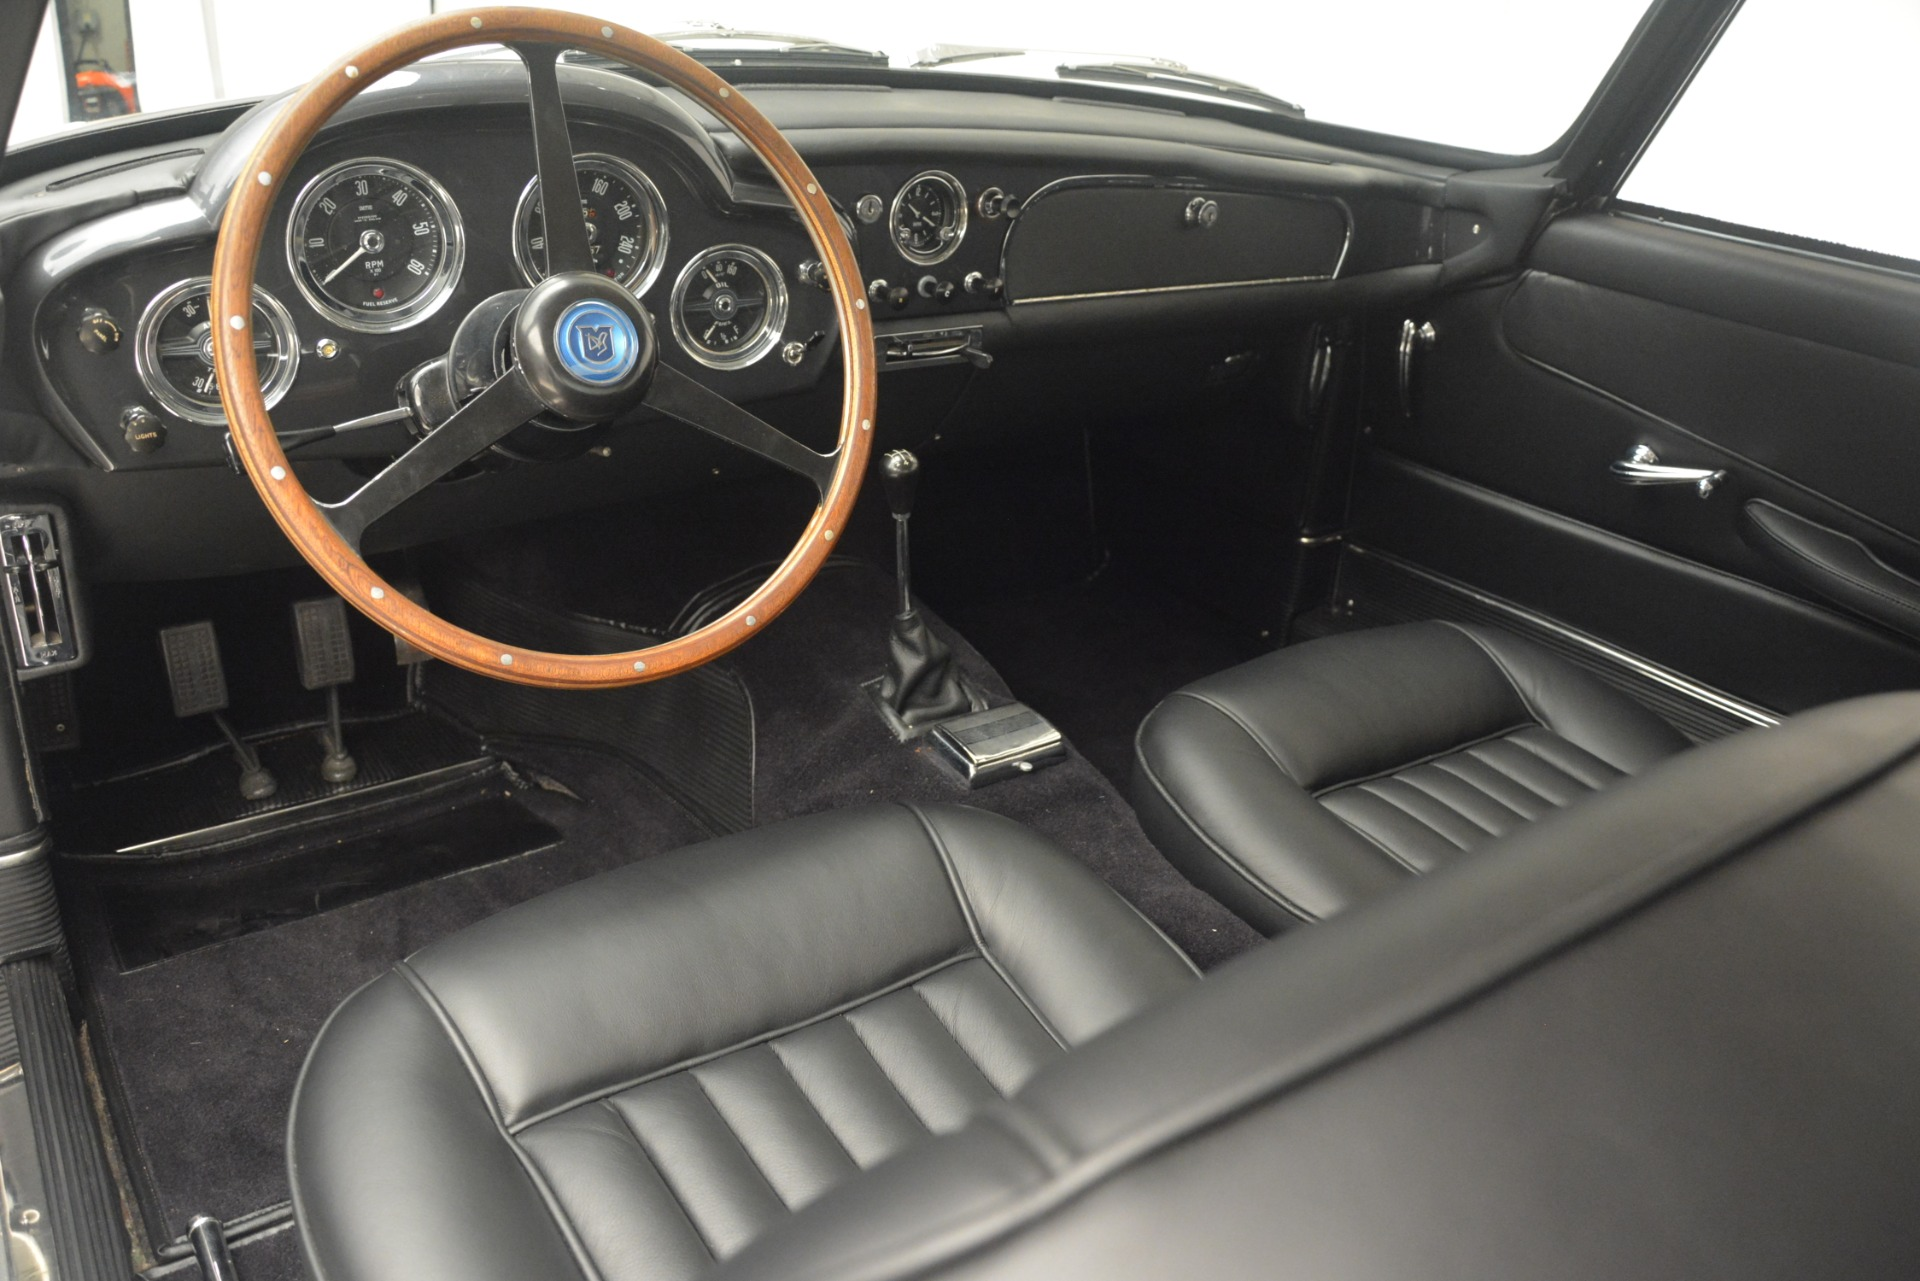 Used 1961 Aston Martin DB4 Series IV Coupe For Sale In Greenwich, CT 3186_p21